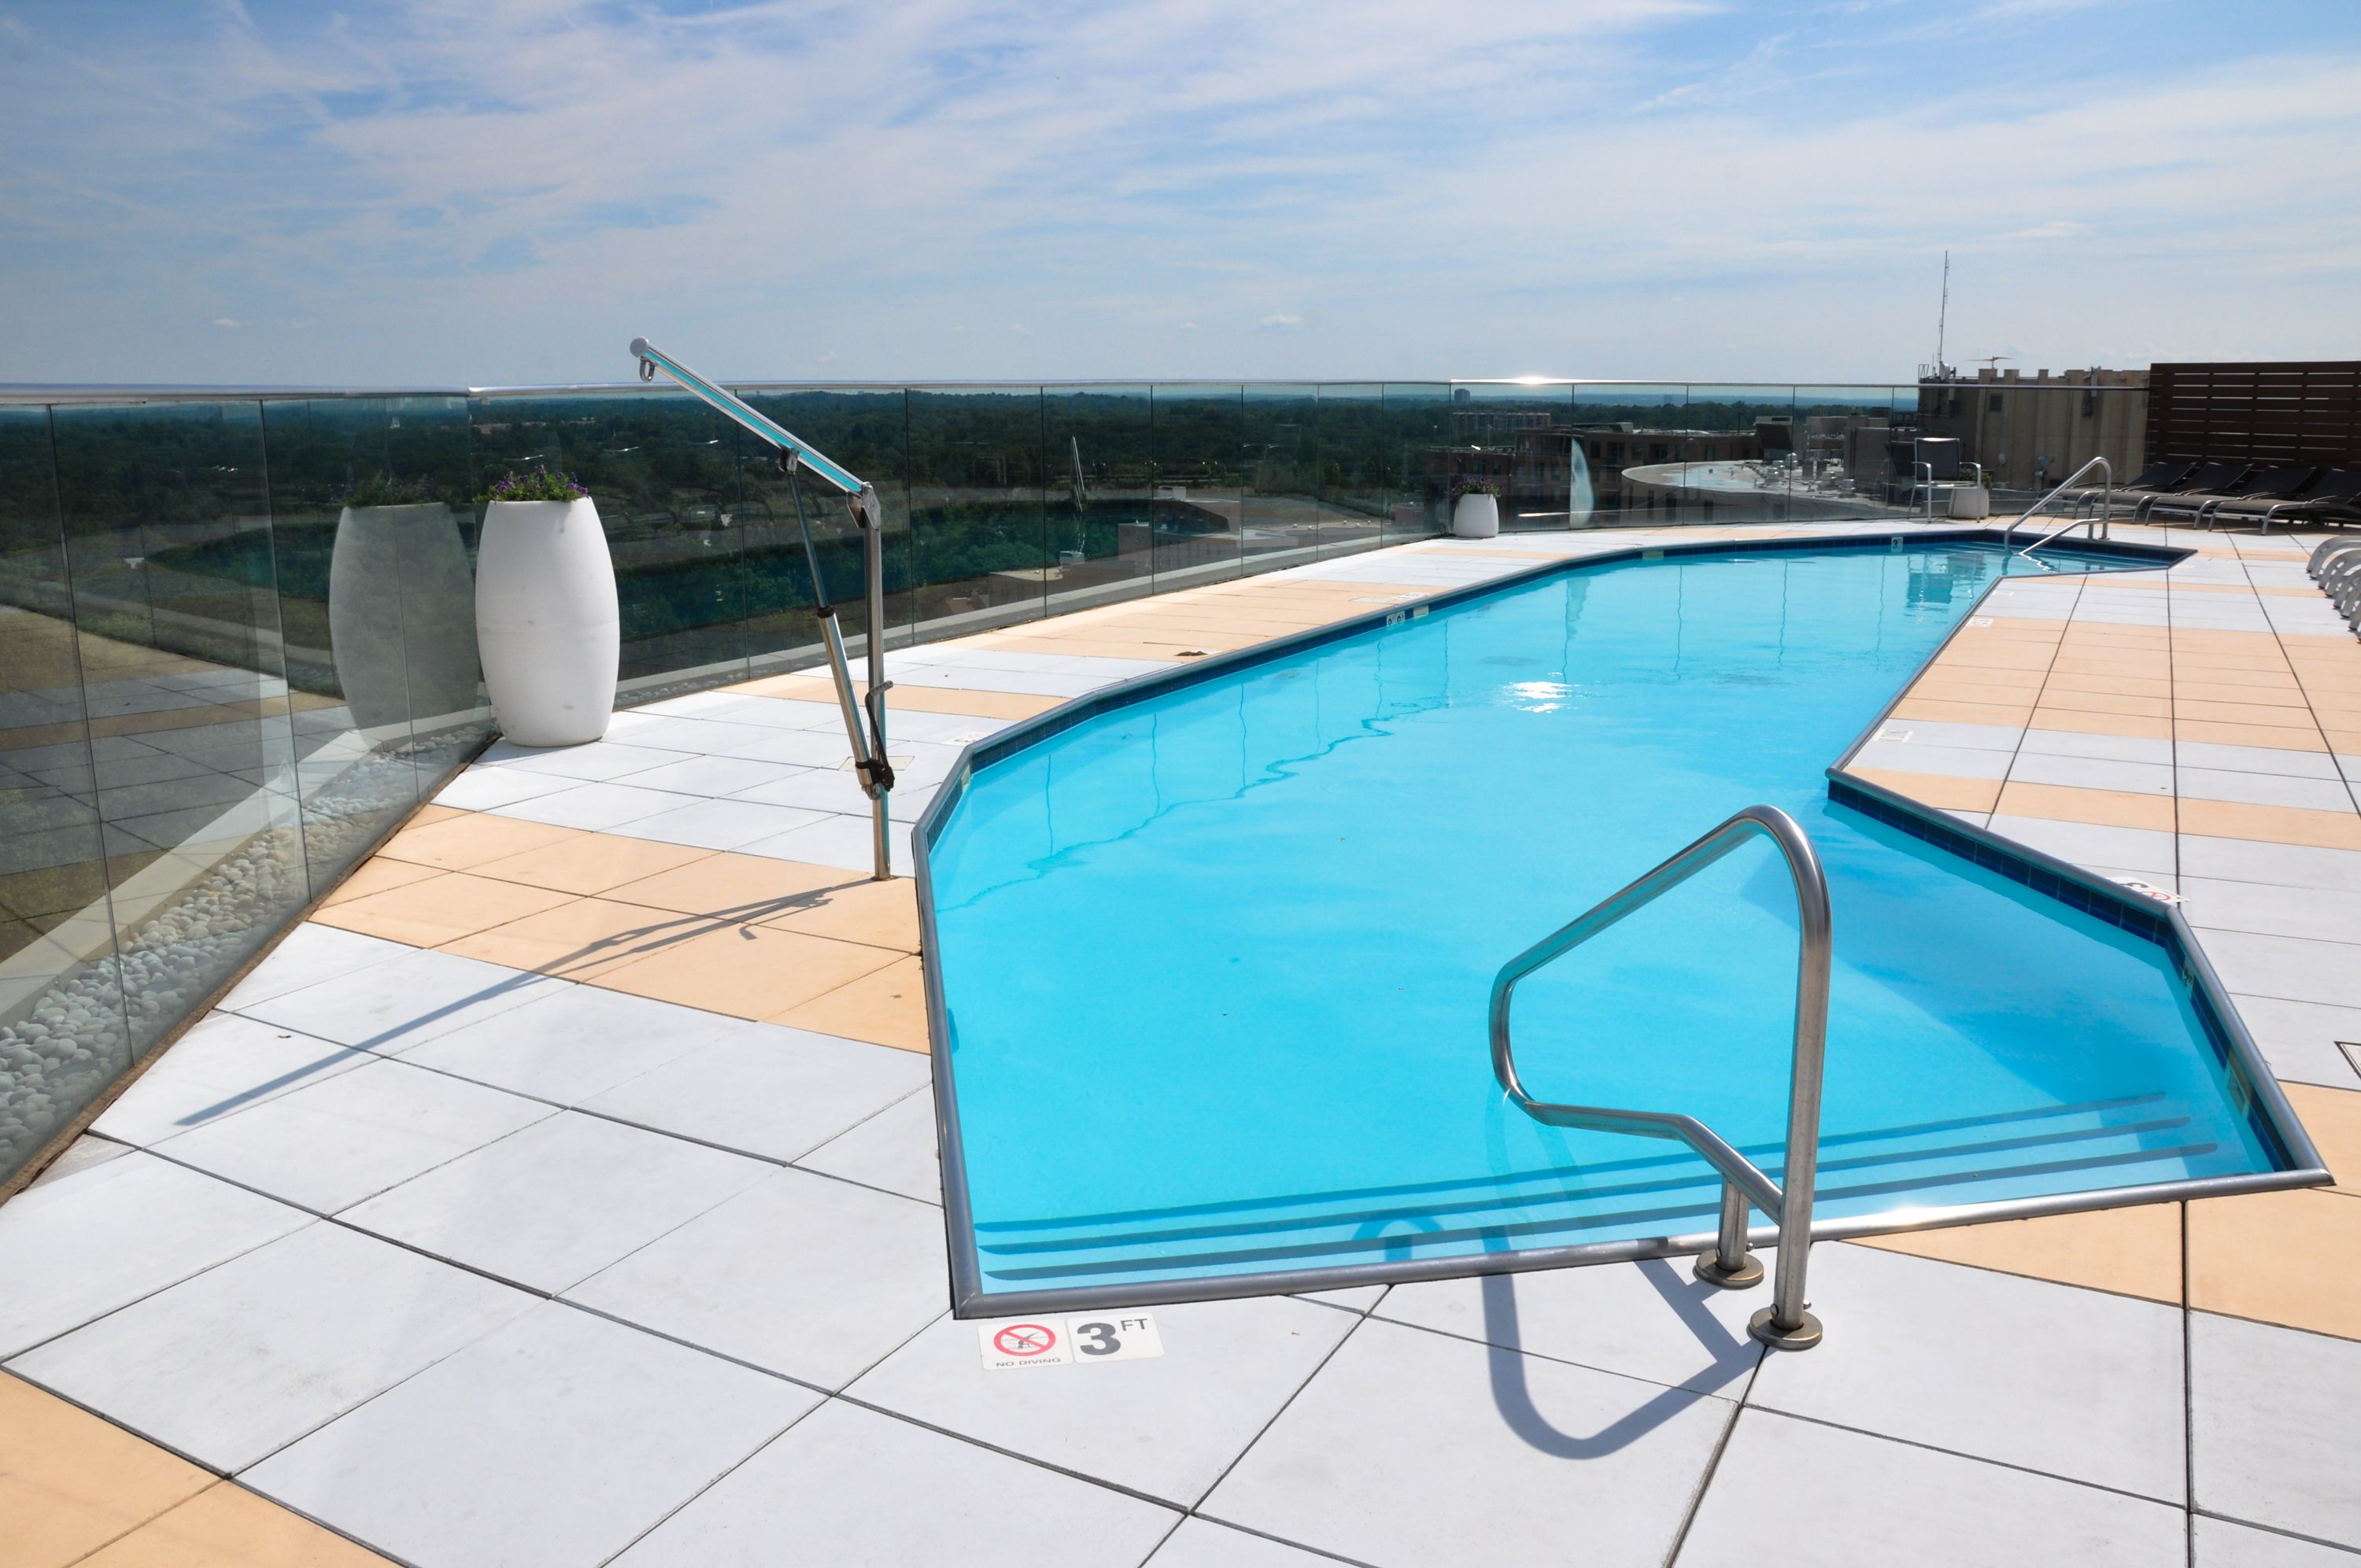 The Point At Silver Spring Apartments Md Resort Style Rooftop Pool Ow Ly Zrqyx Rooftop Pool Apartmentbuilding Newapartmen Rooftop Pool Resort Style Pool